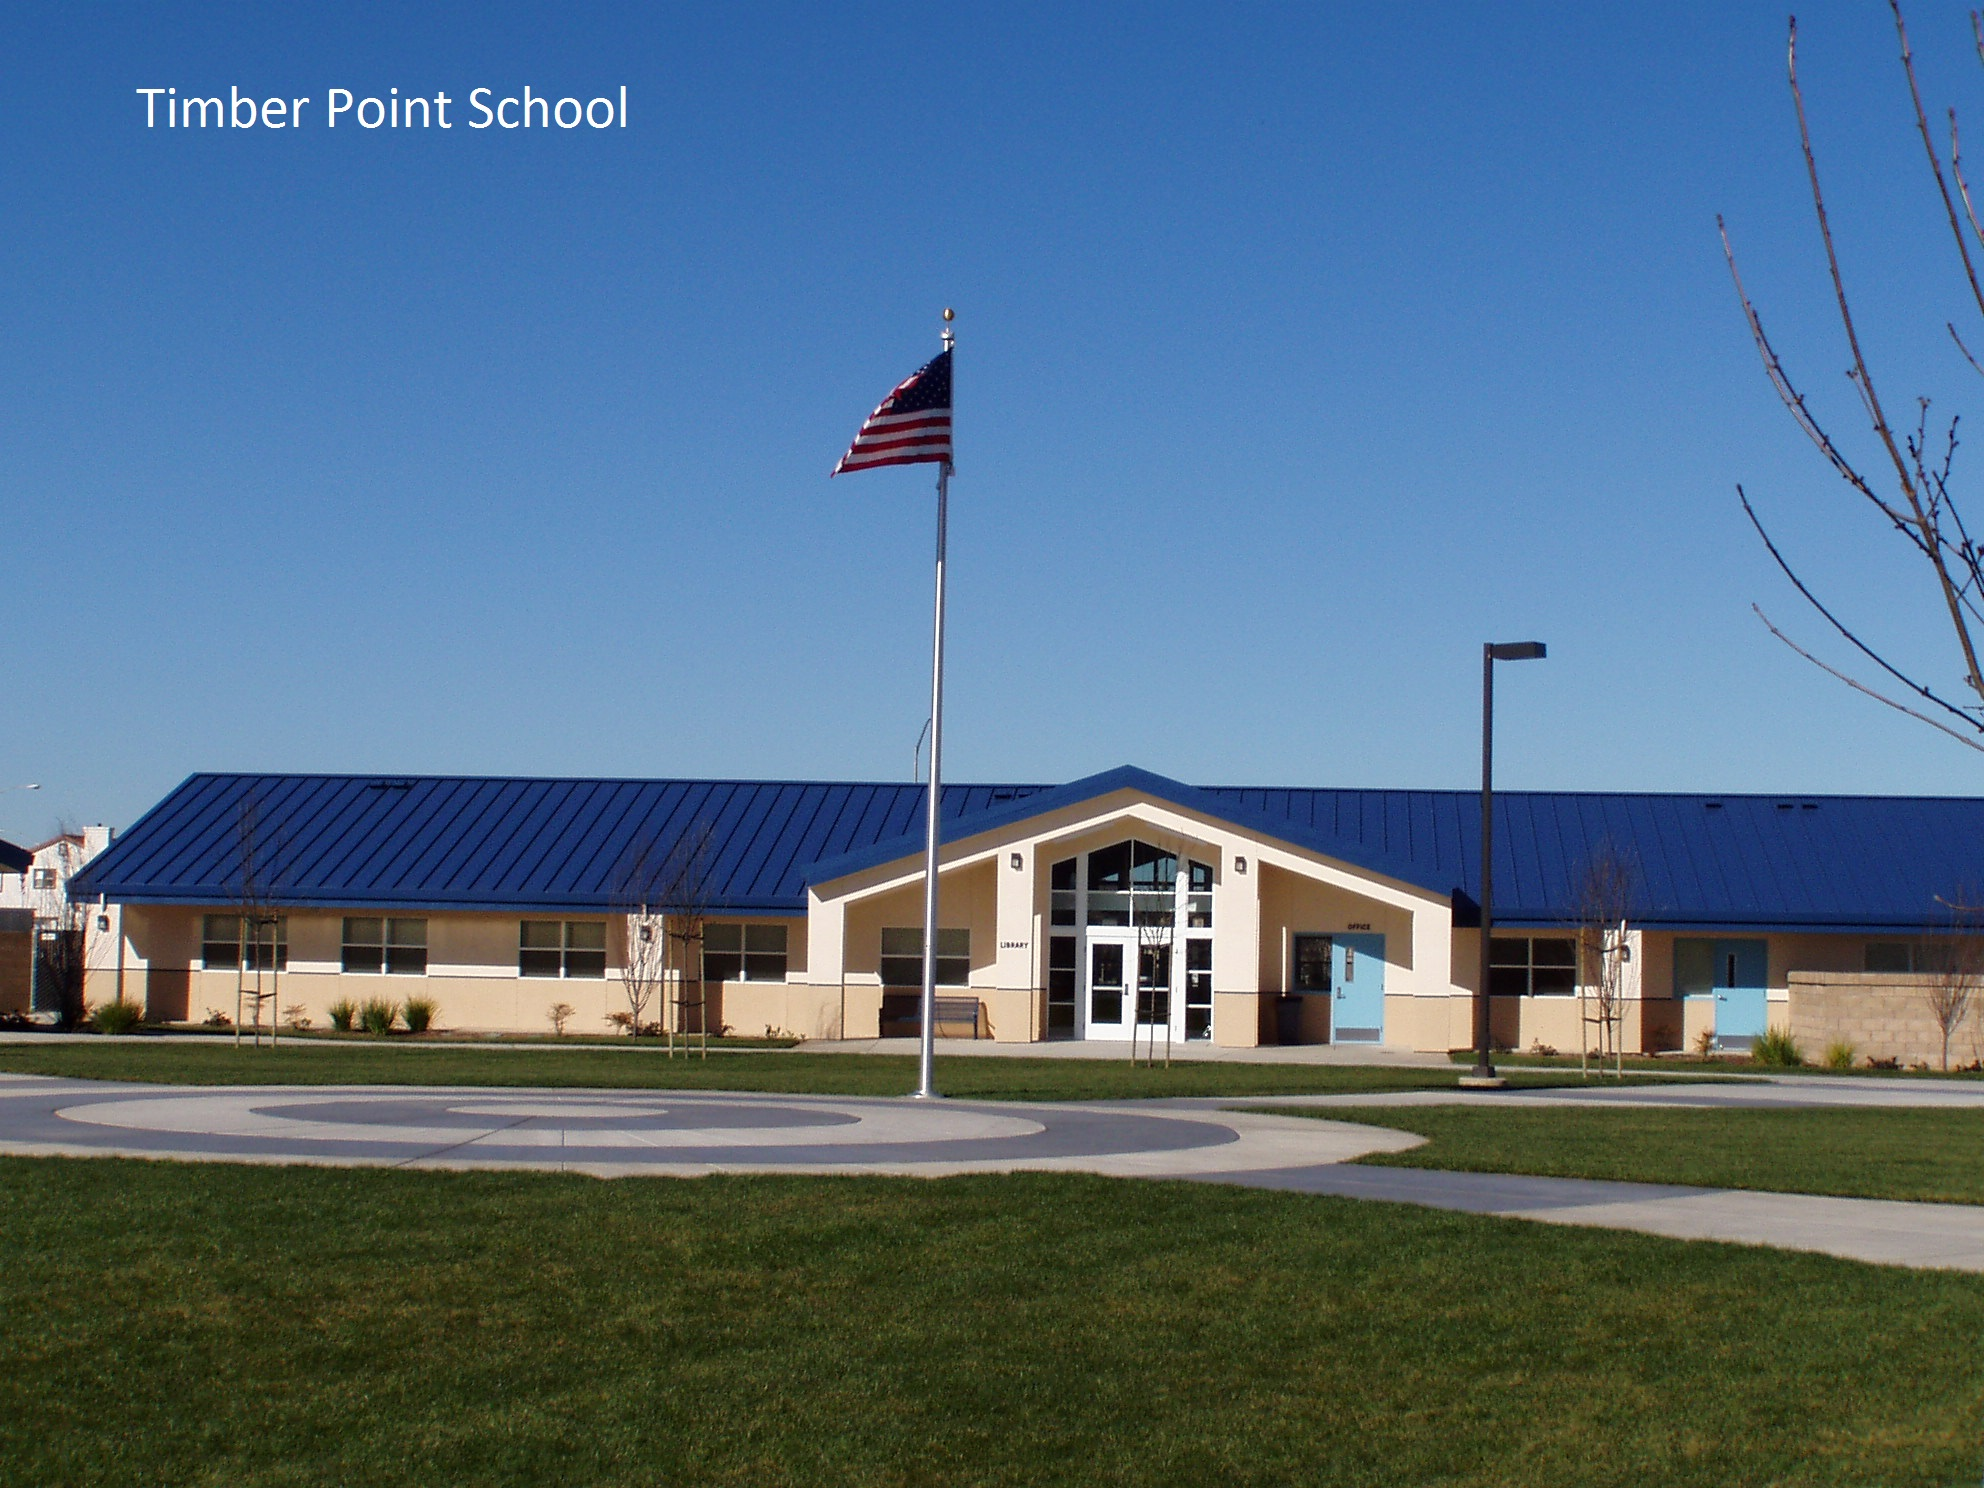 Timber Point School